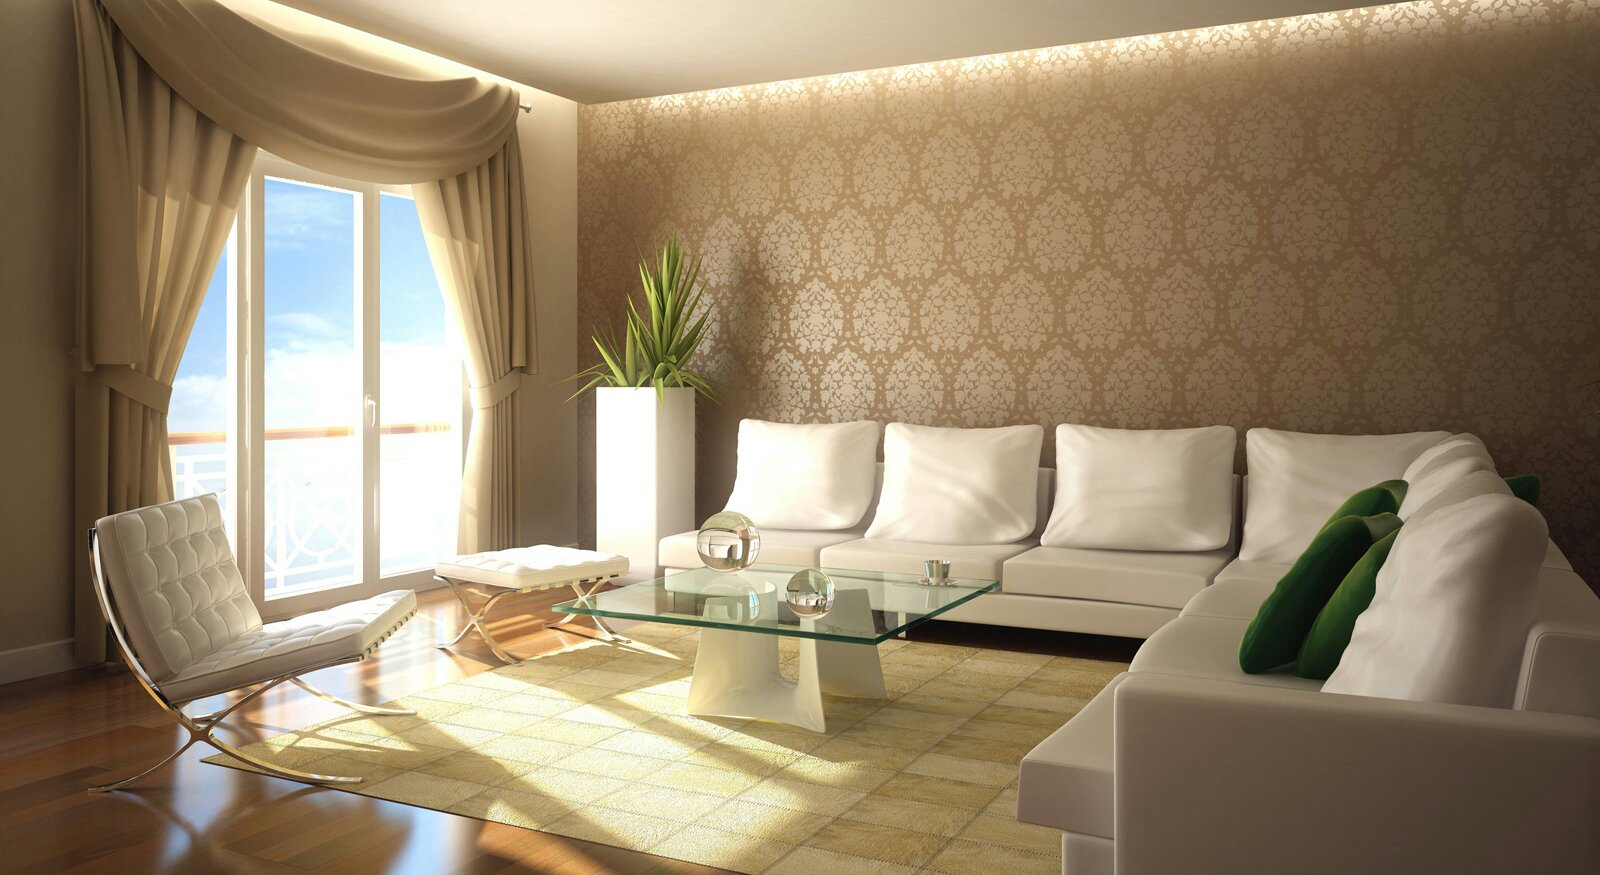 Beauty of walls my decorative elegant brown wall murals for living room amipublicfo Image collections